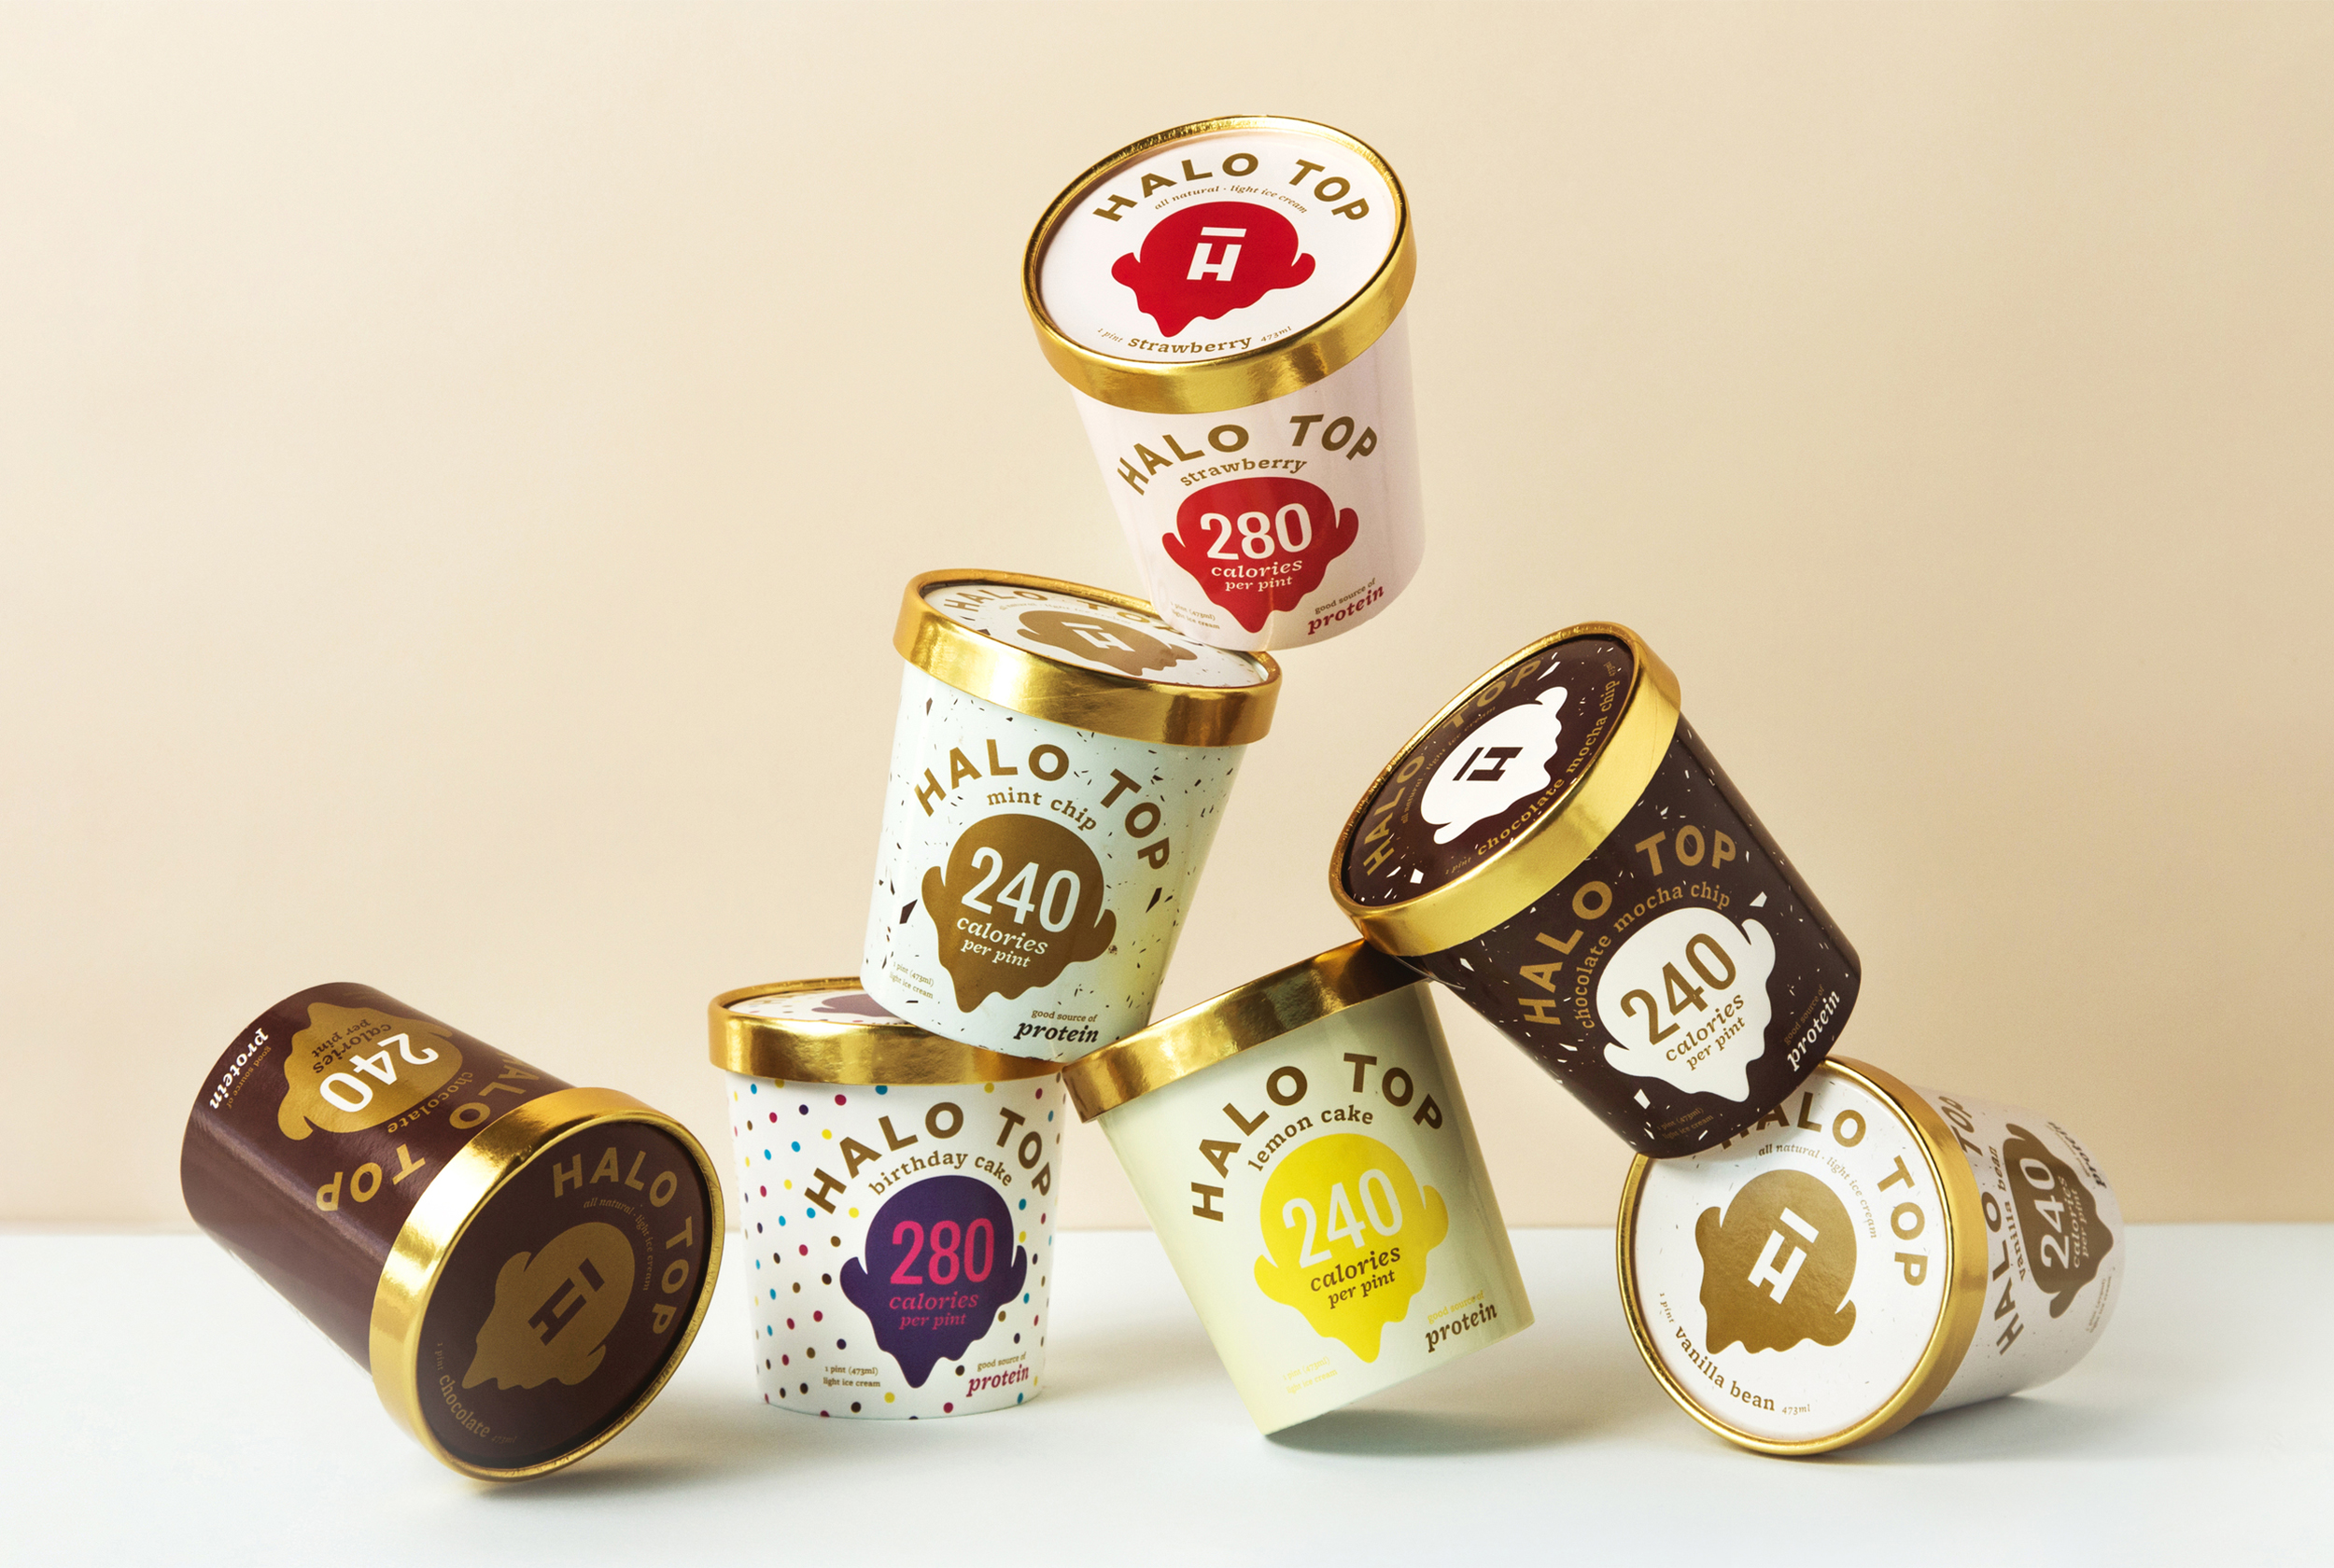 Halo Top Branding & Art Direction